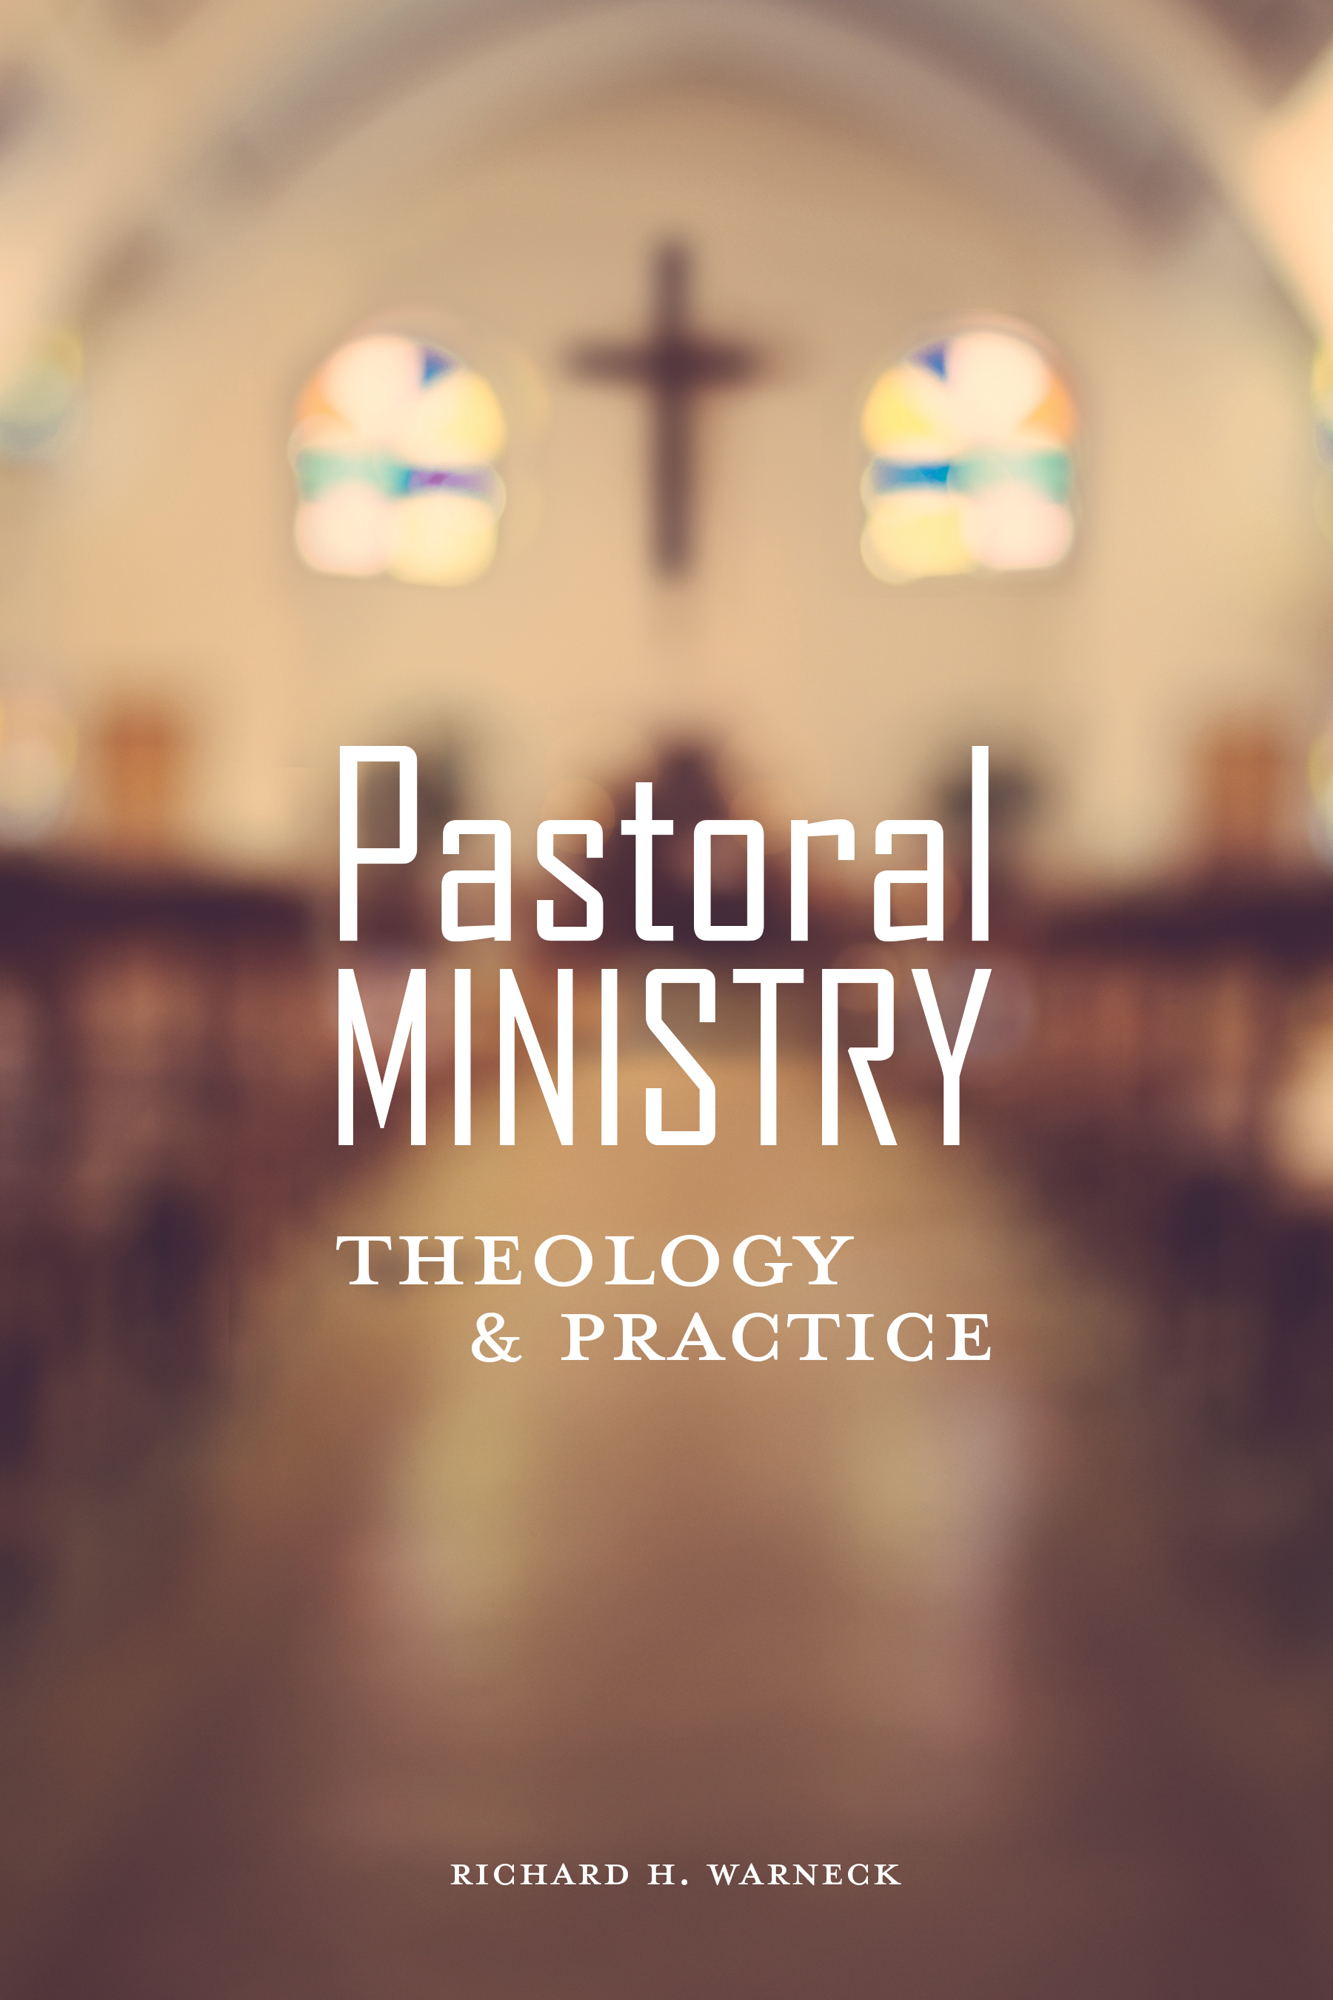 Book Blurbs: Richard Warneck on Pastoral Ministry